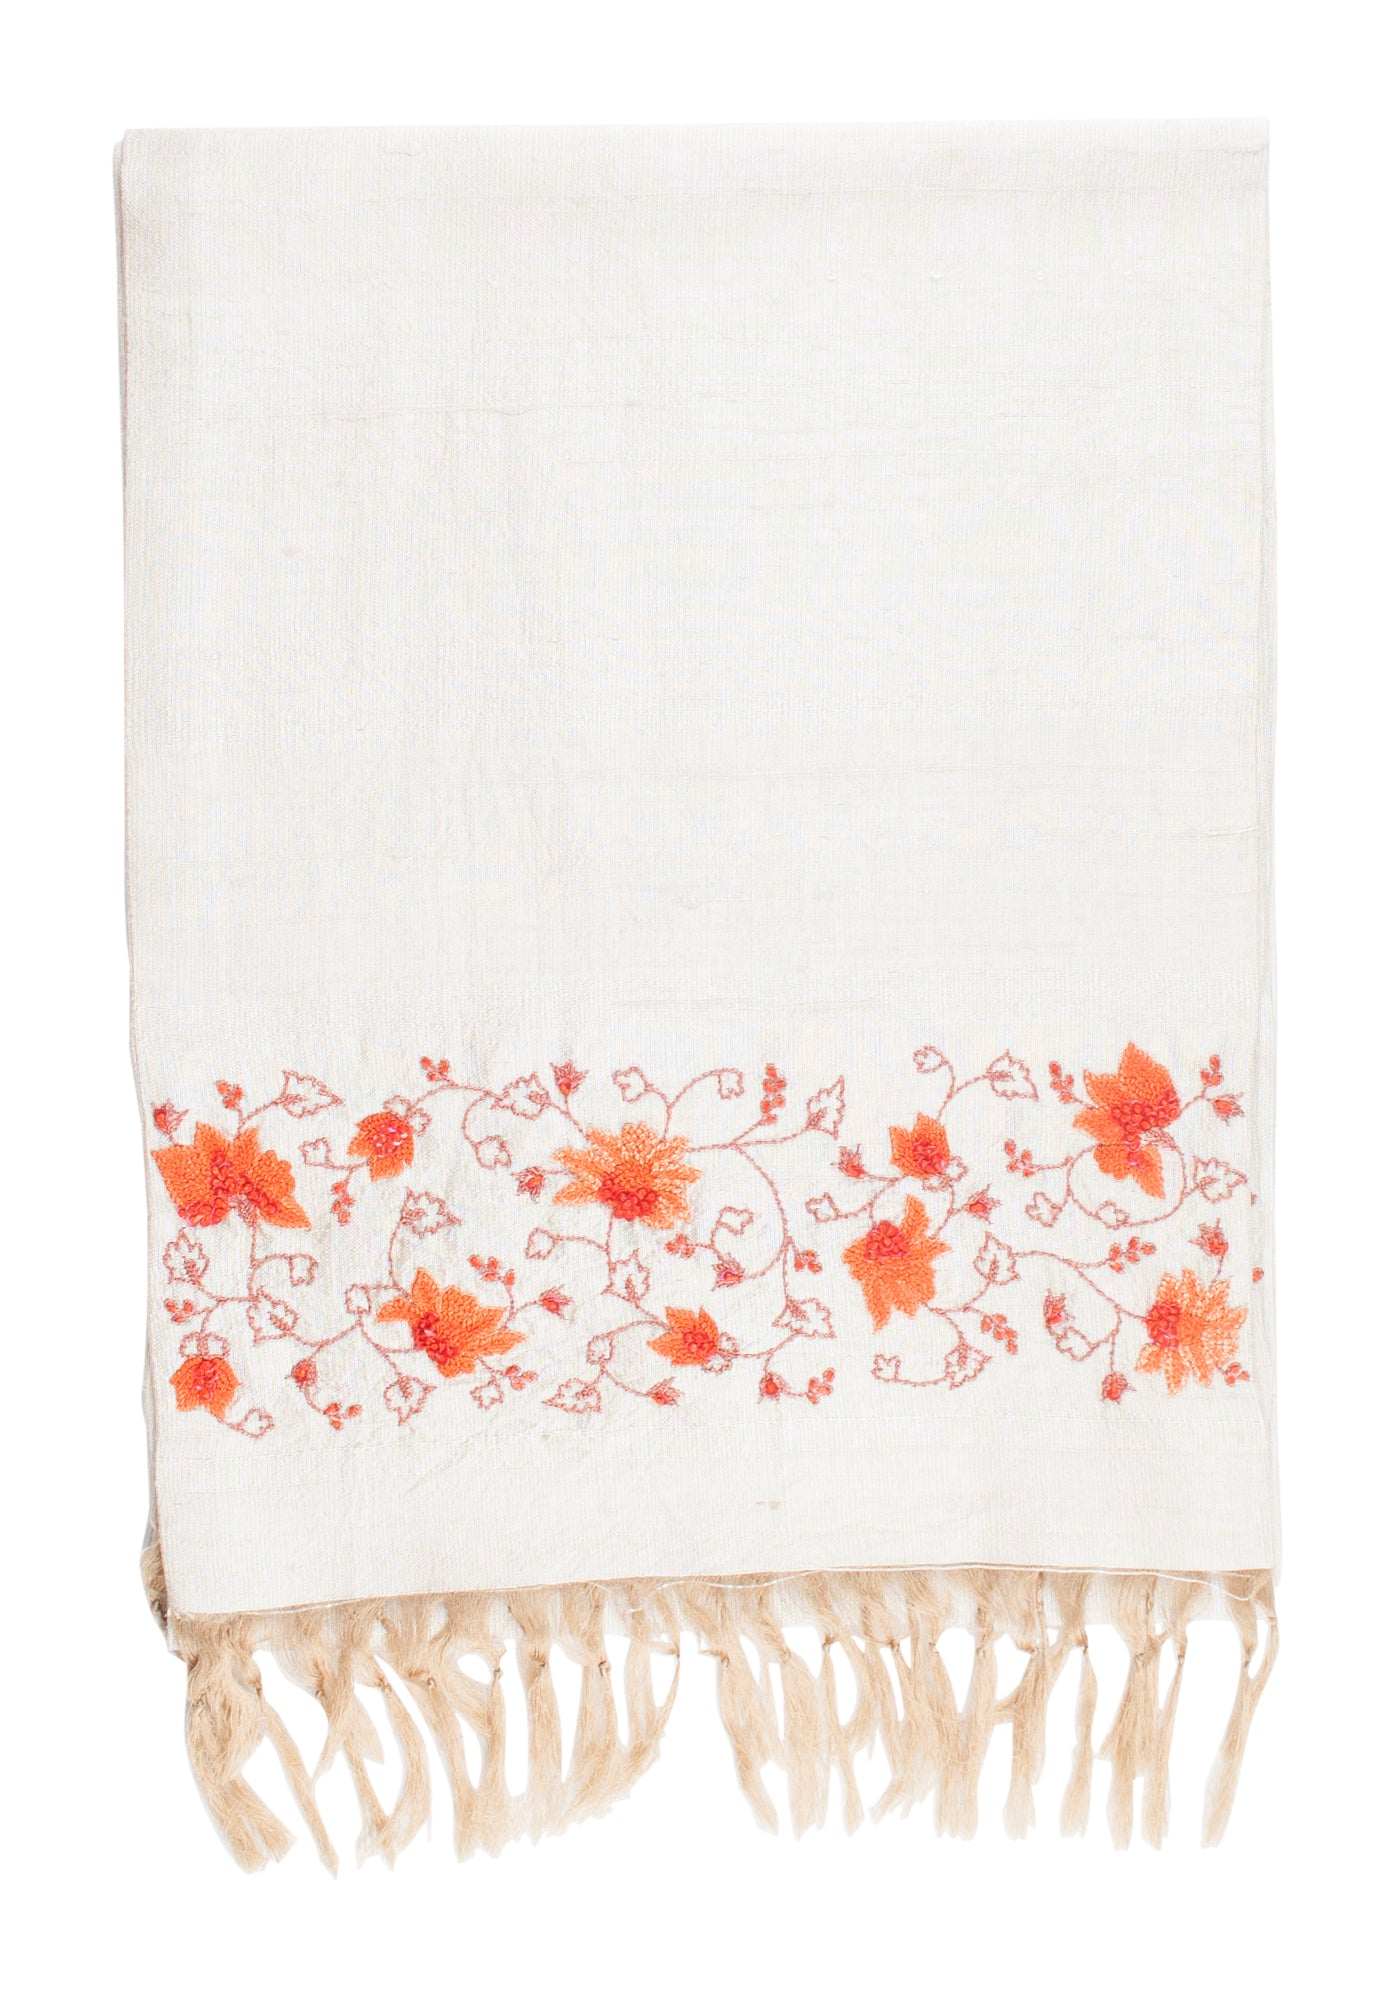 Hand Embroidered Scarf in Beige Silk - MINC ecofashion